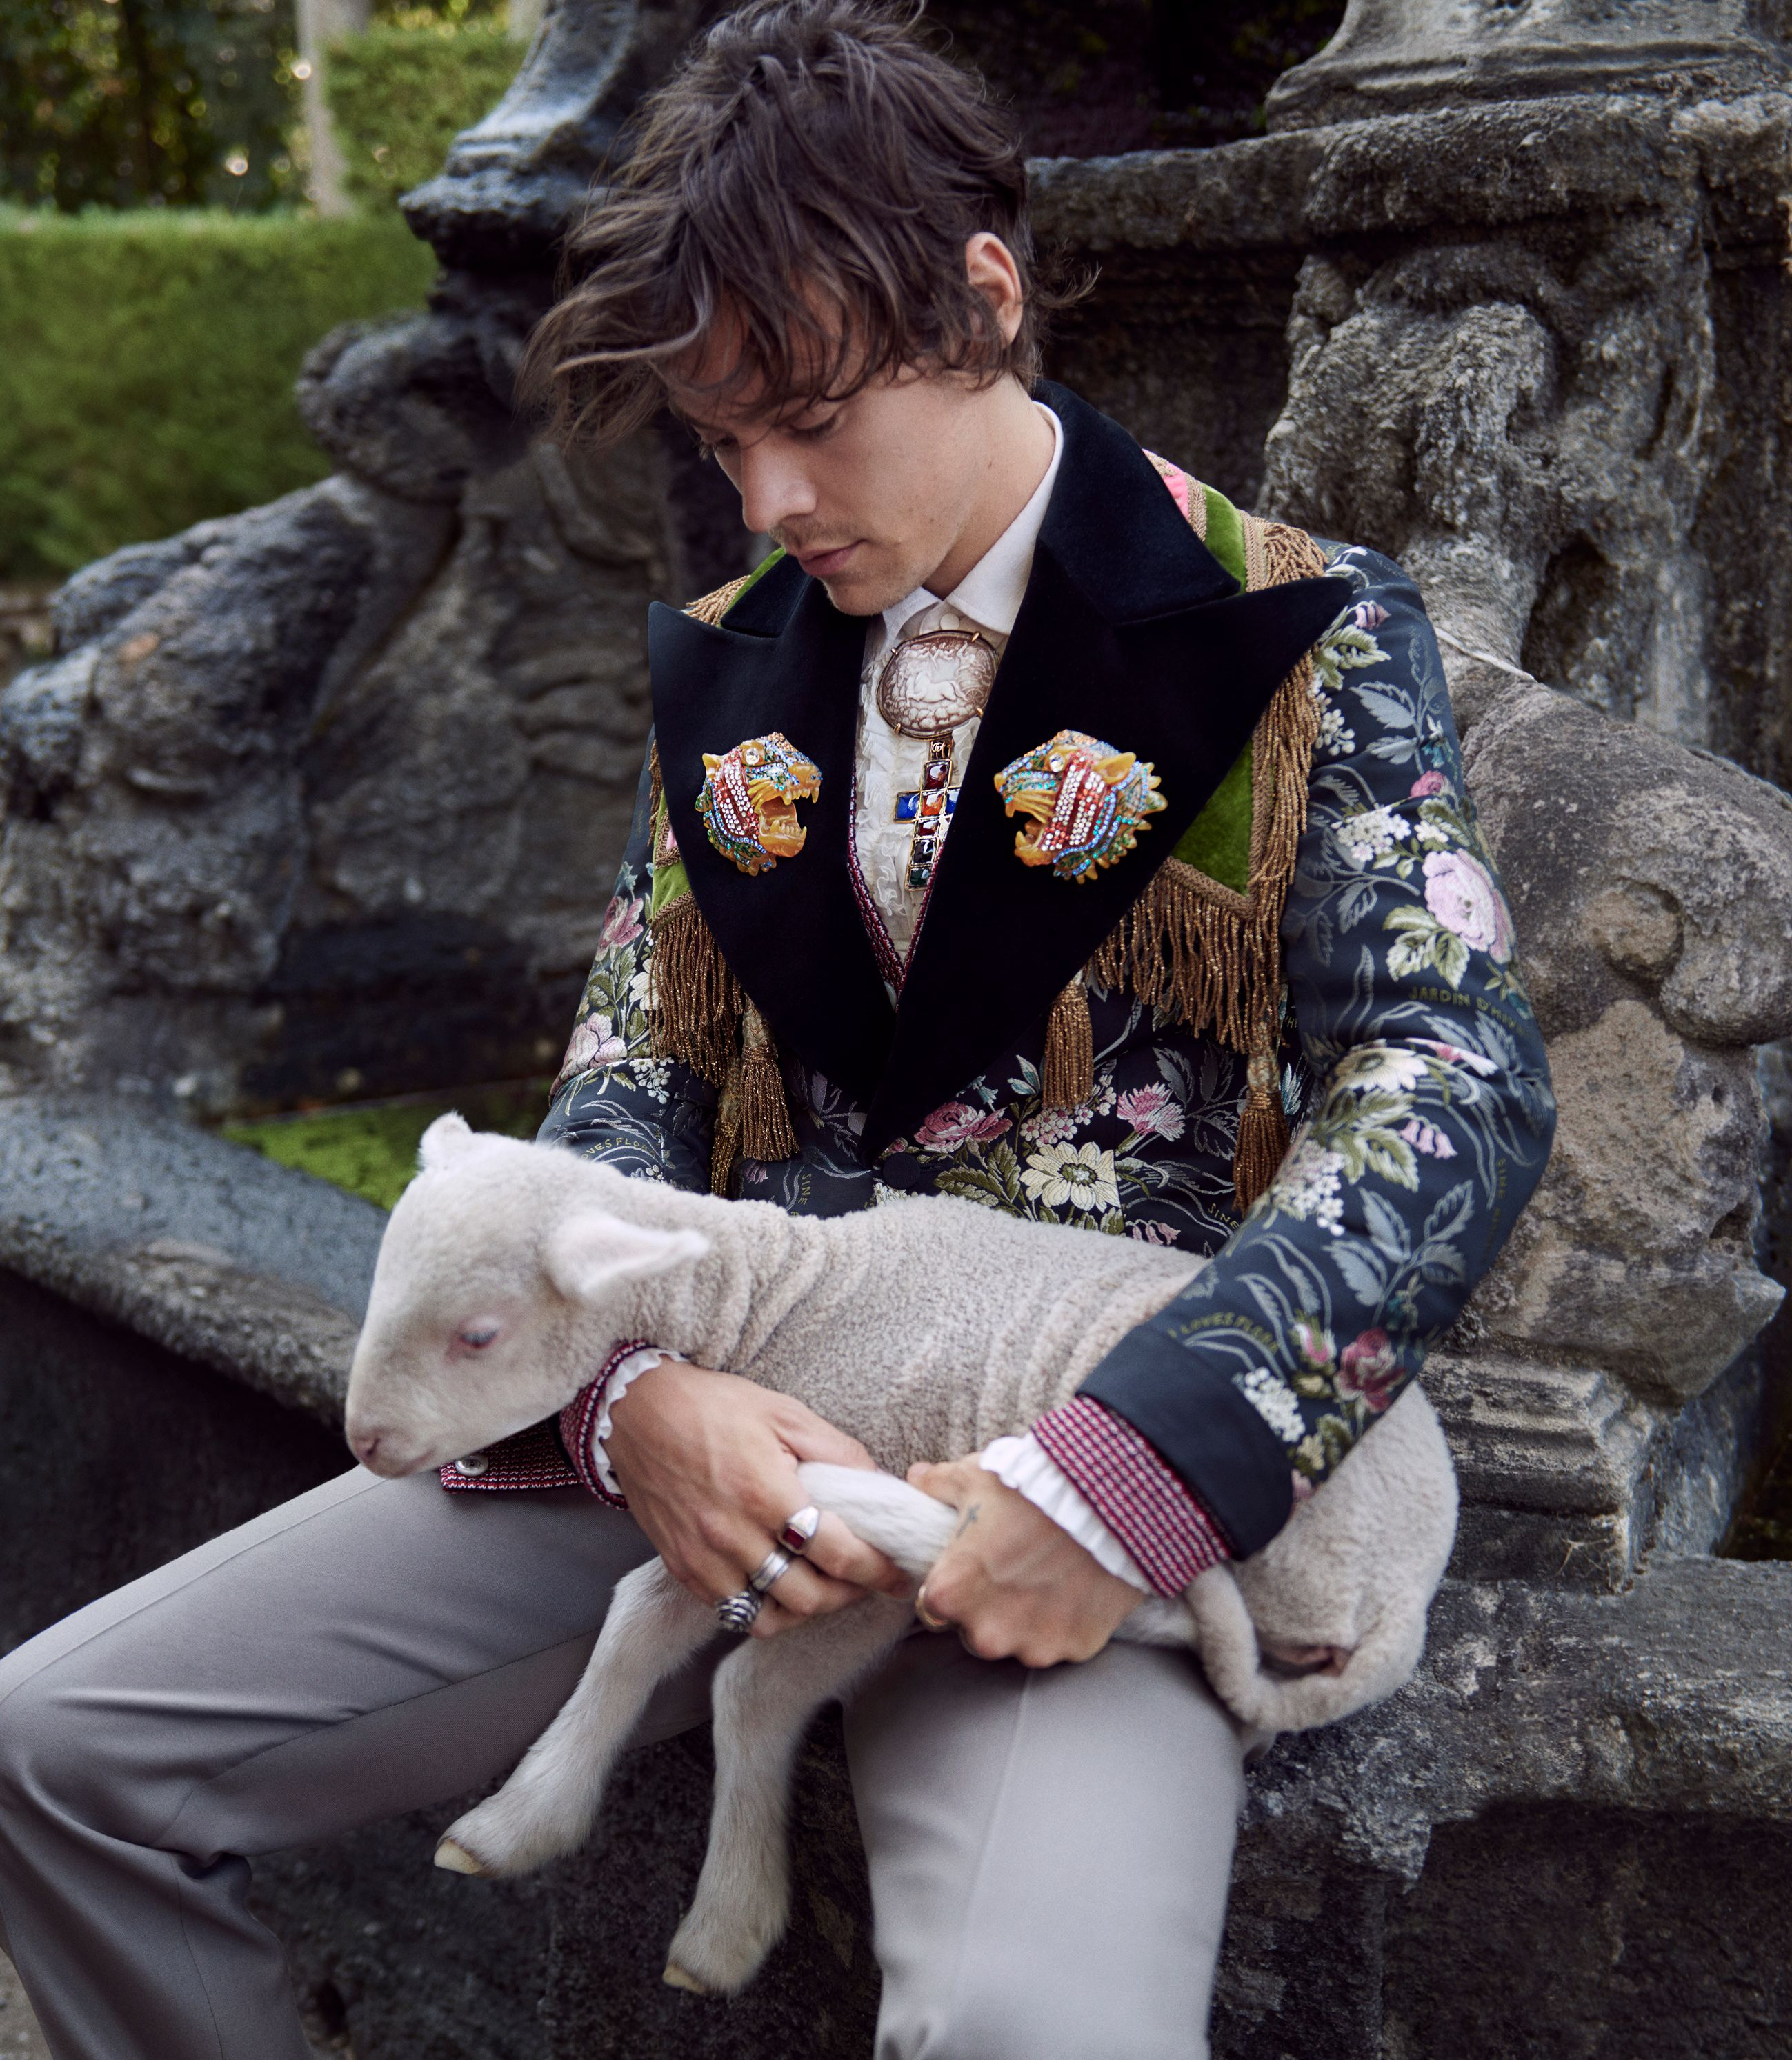 Gucci Harry Styles AW18